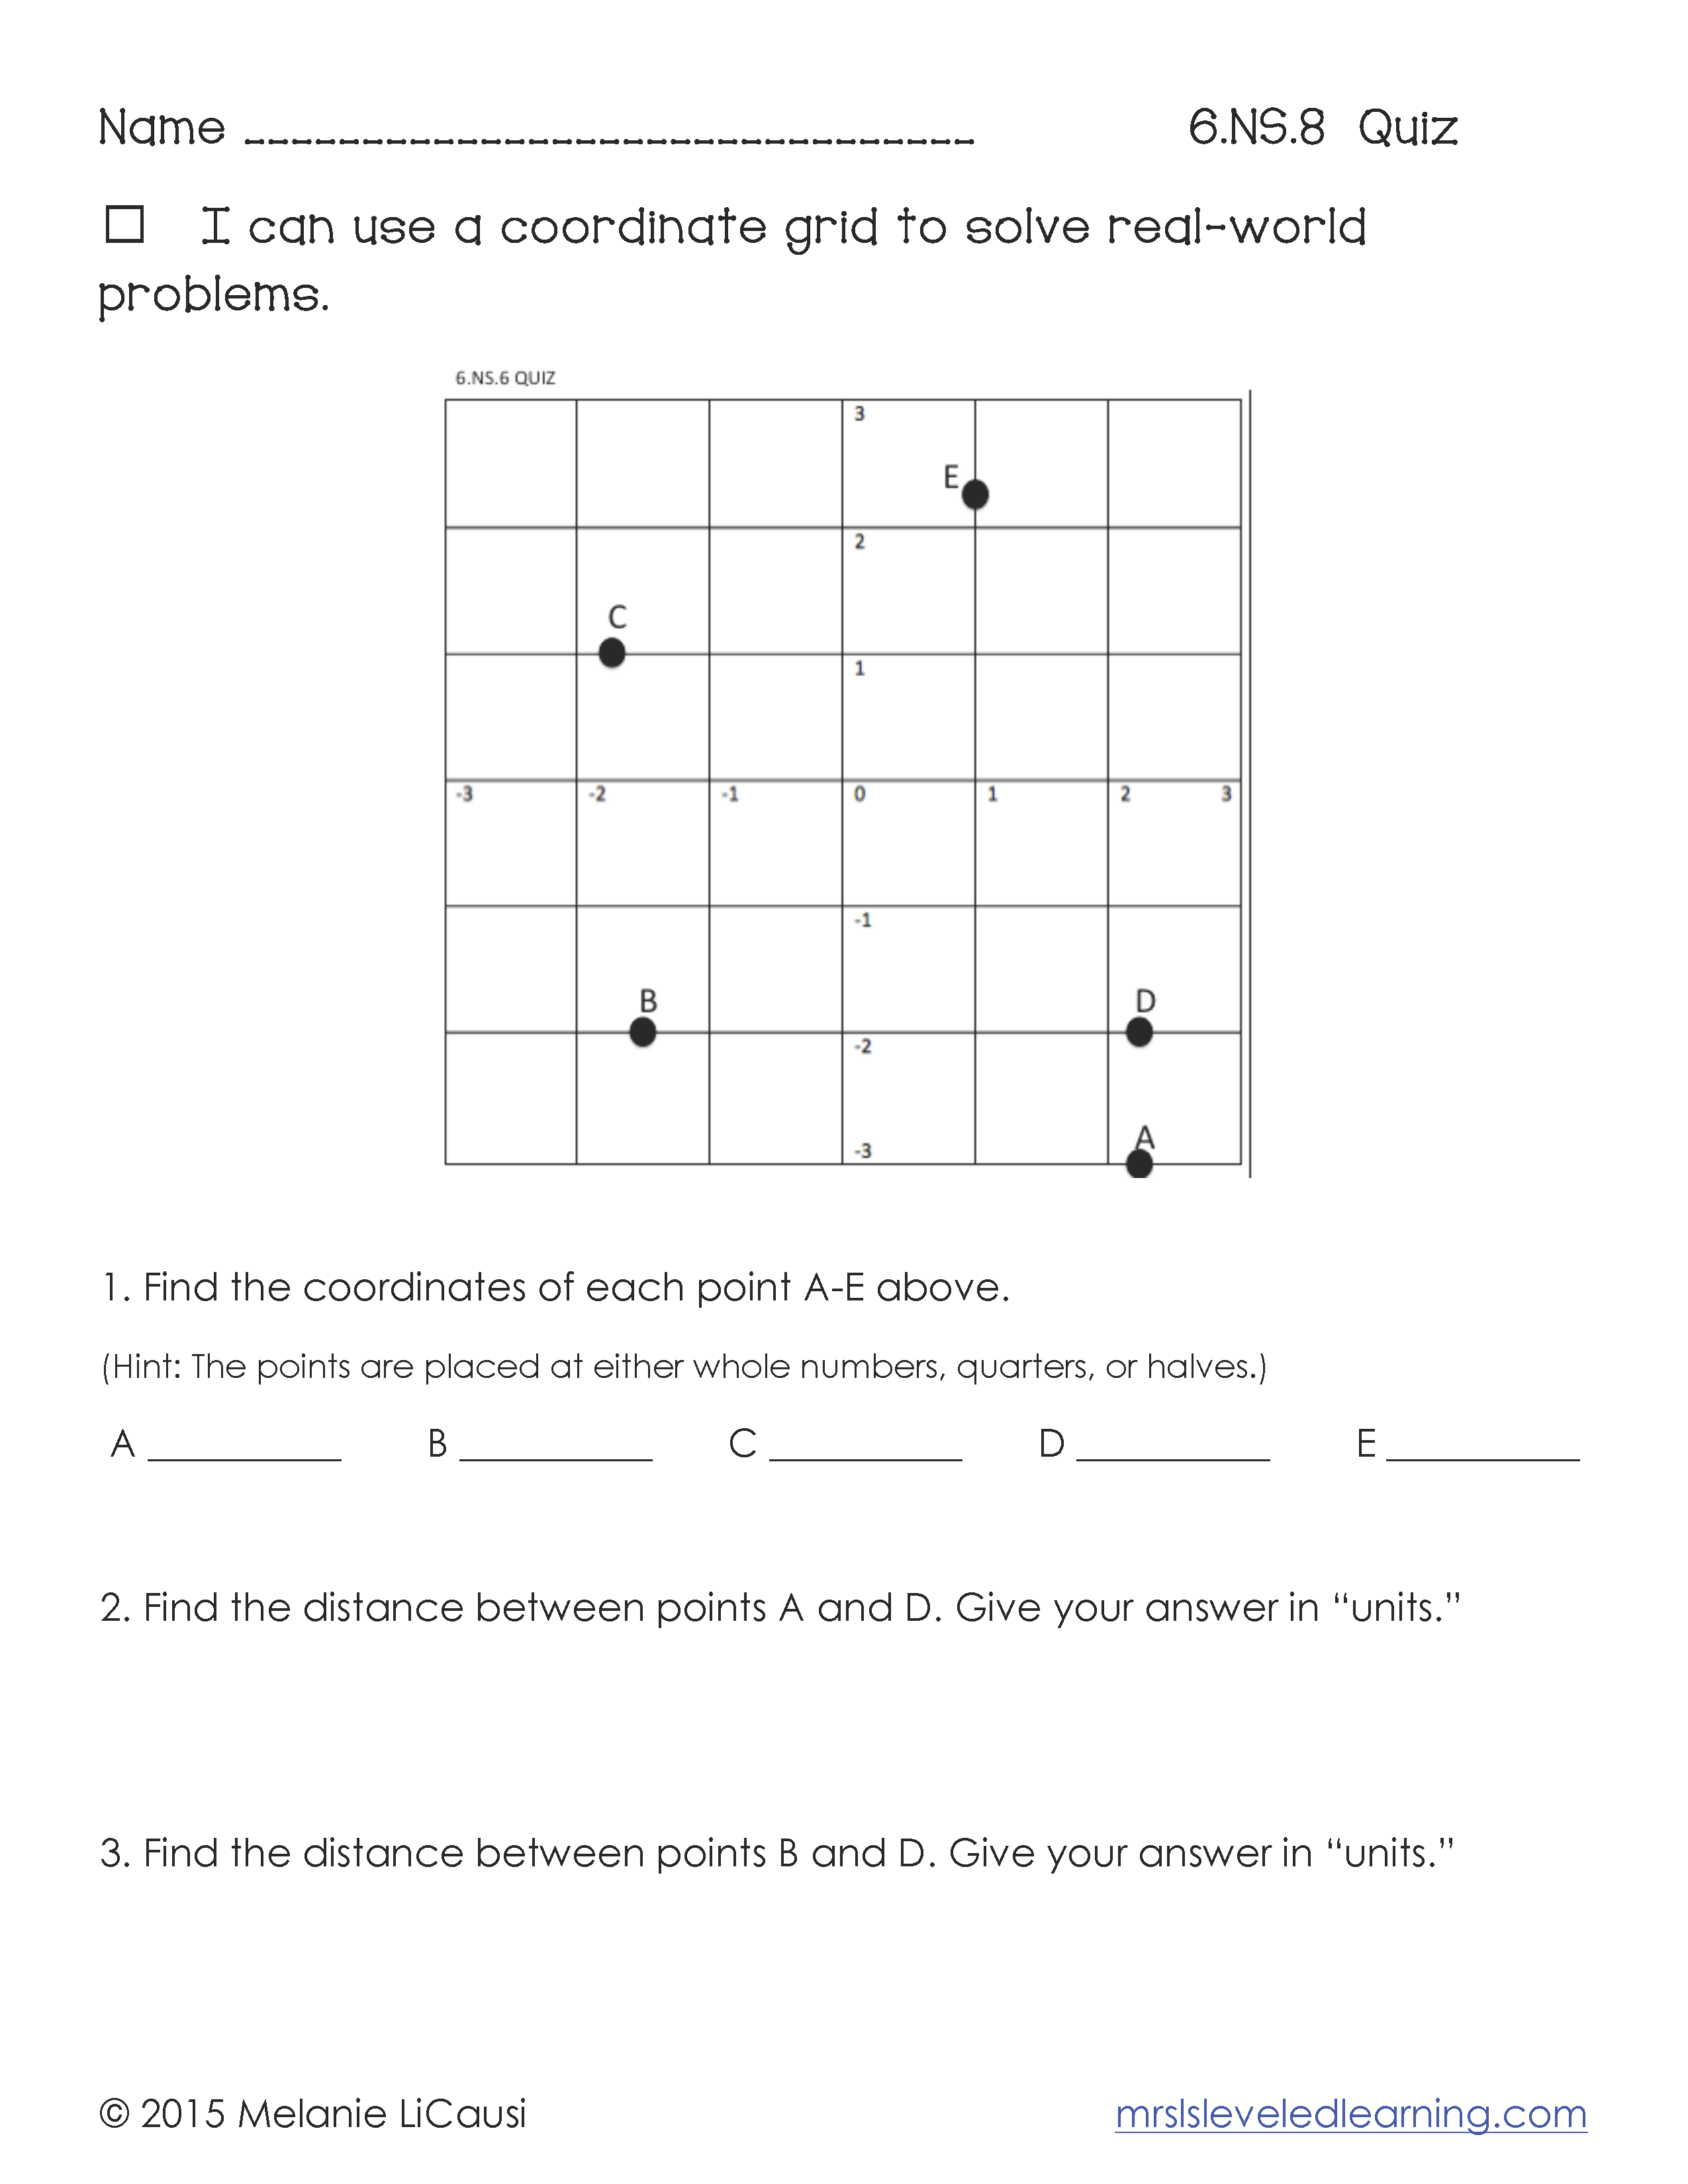 Free Common Core Math Quizzes Grades 3 8 Sign Up On My